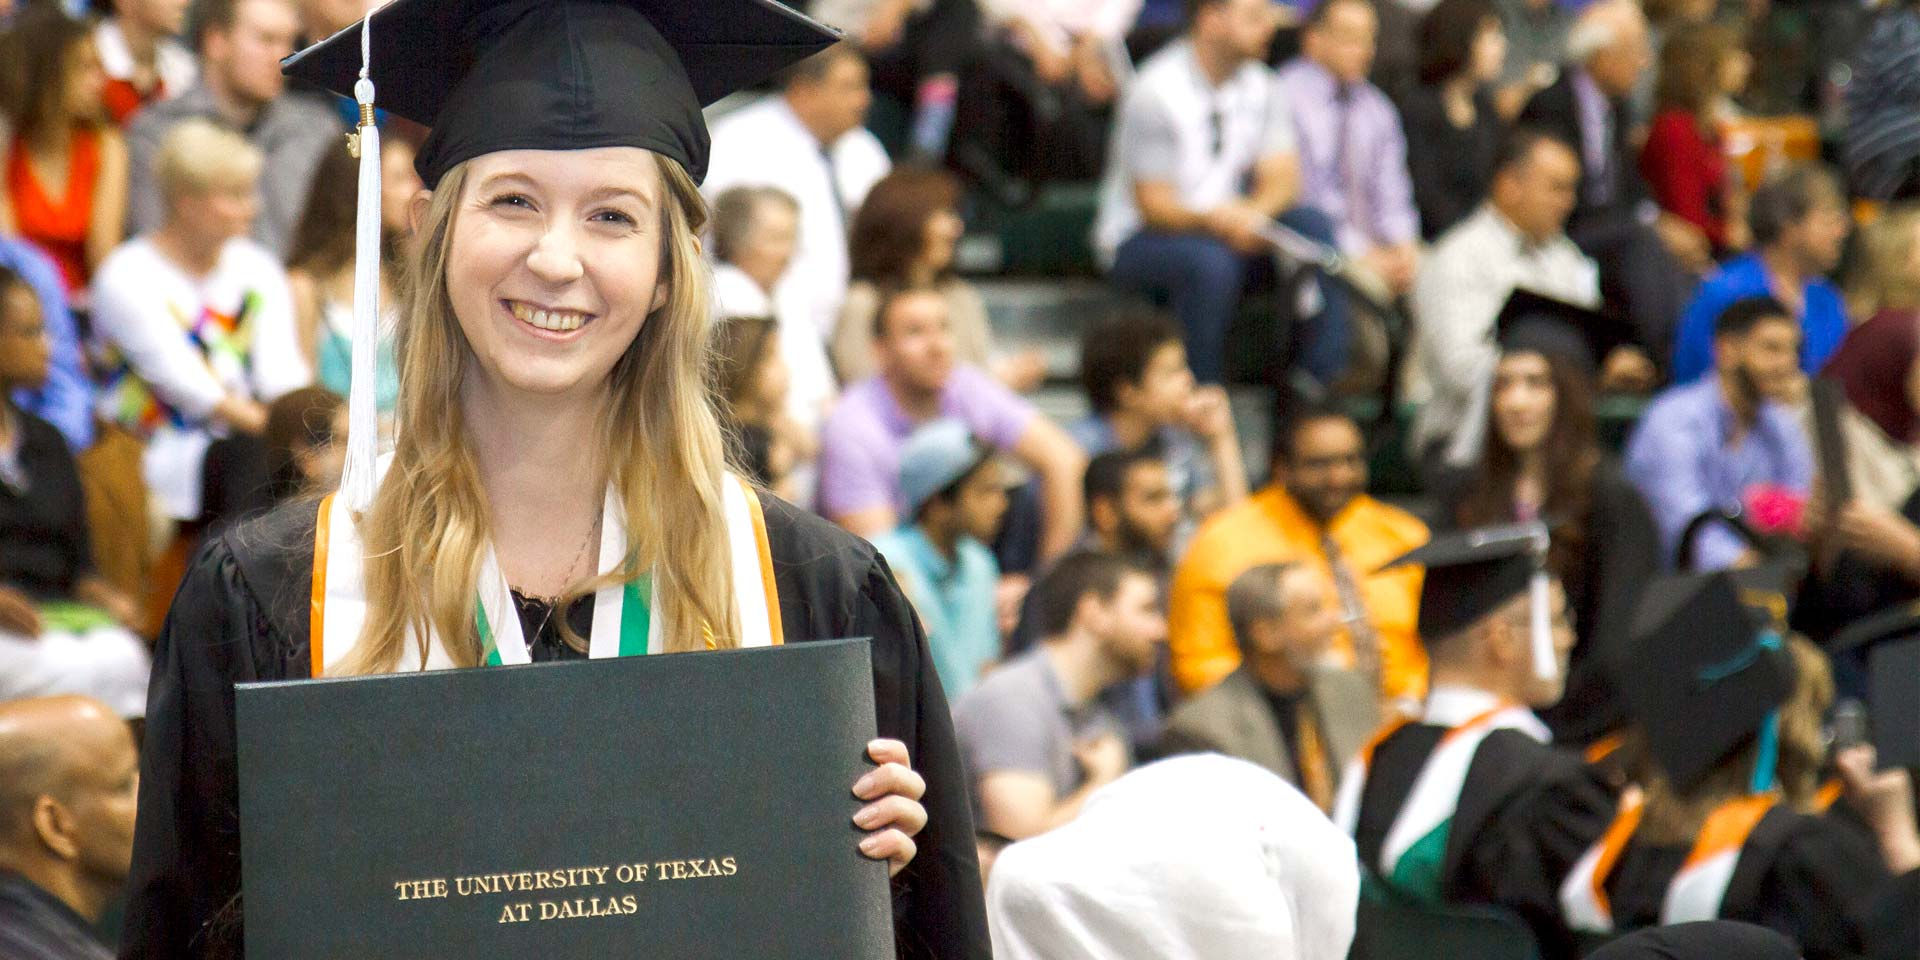 Jindal School bachelor's in human resource management gradaute on UT Dallas commencement day